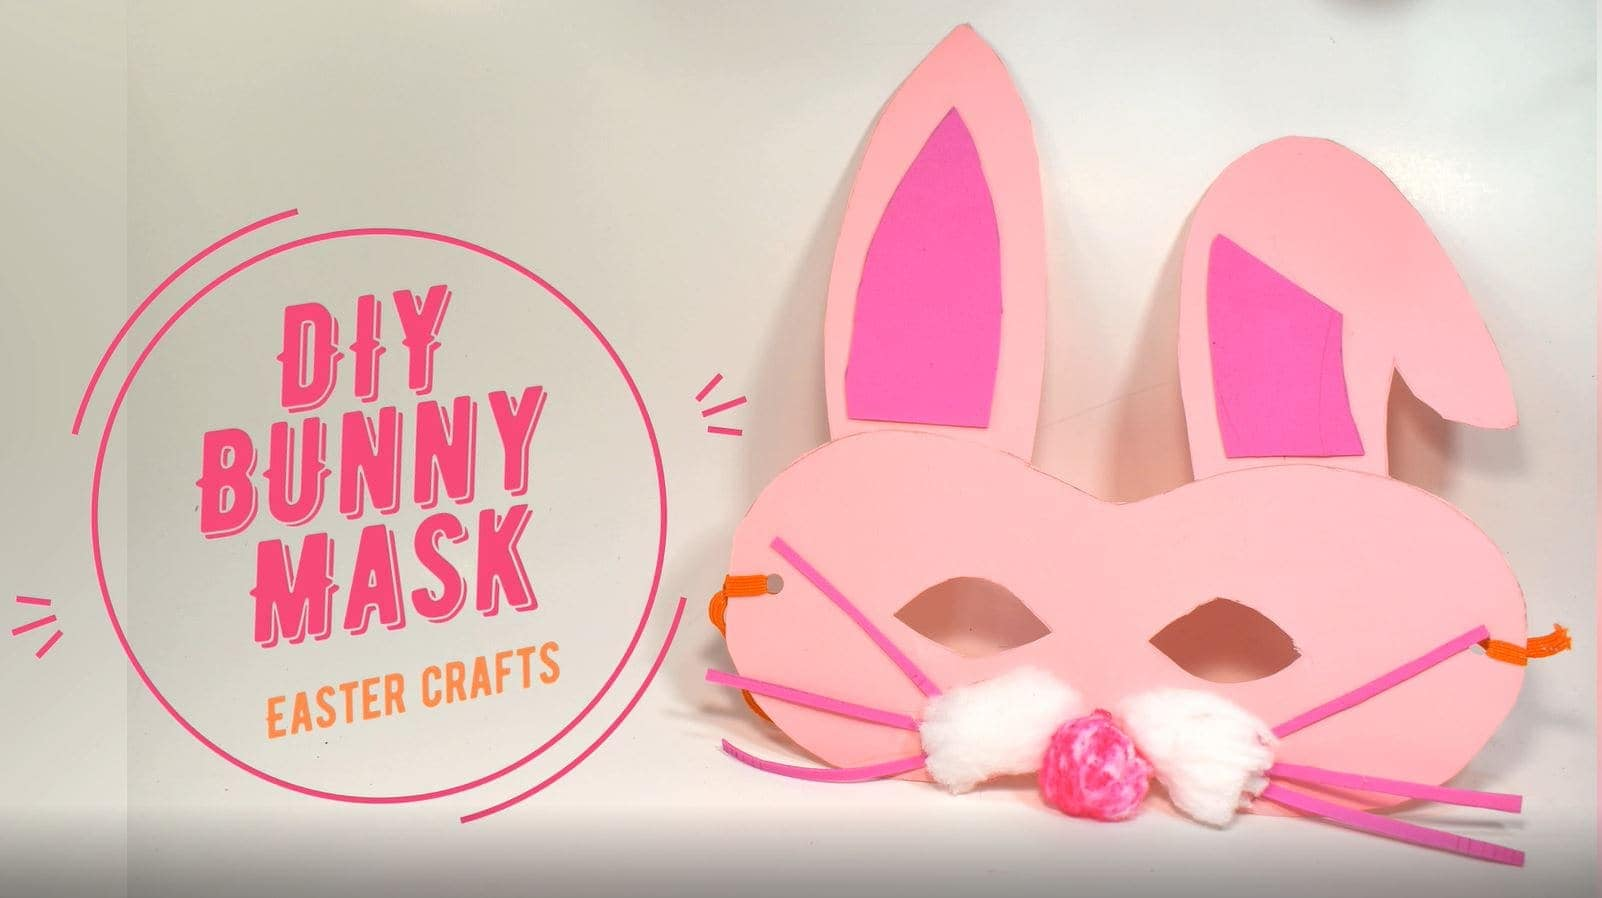 bunny mask rwc featured image